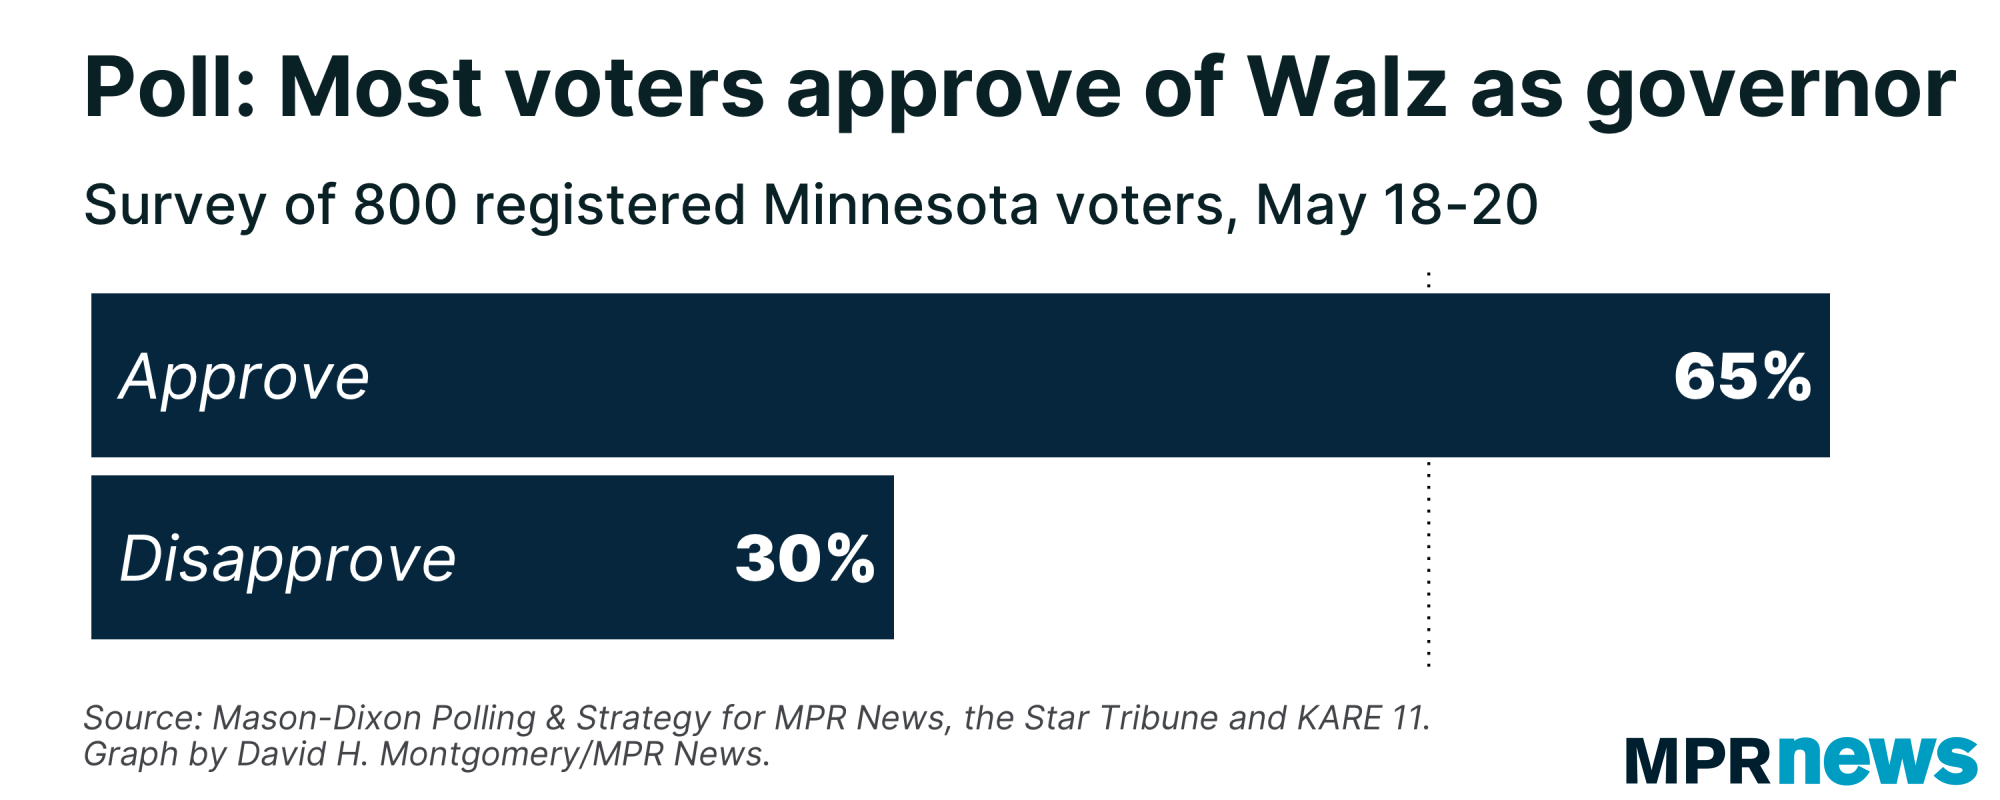 About two-thirds of Minnesota voters approve of Gov. Tim Walz